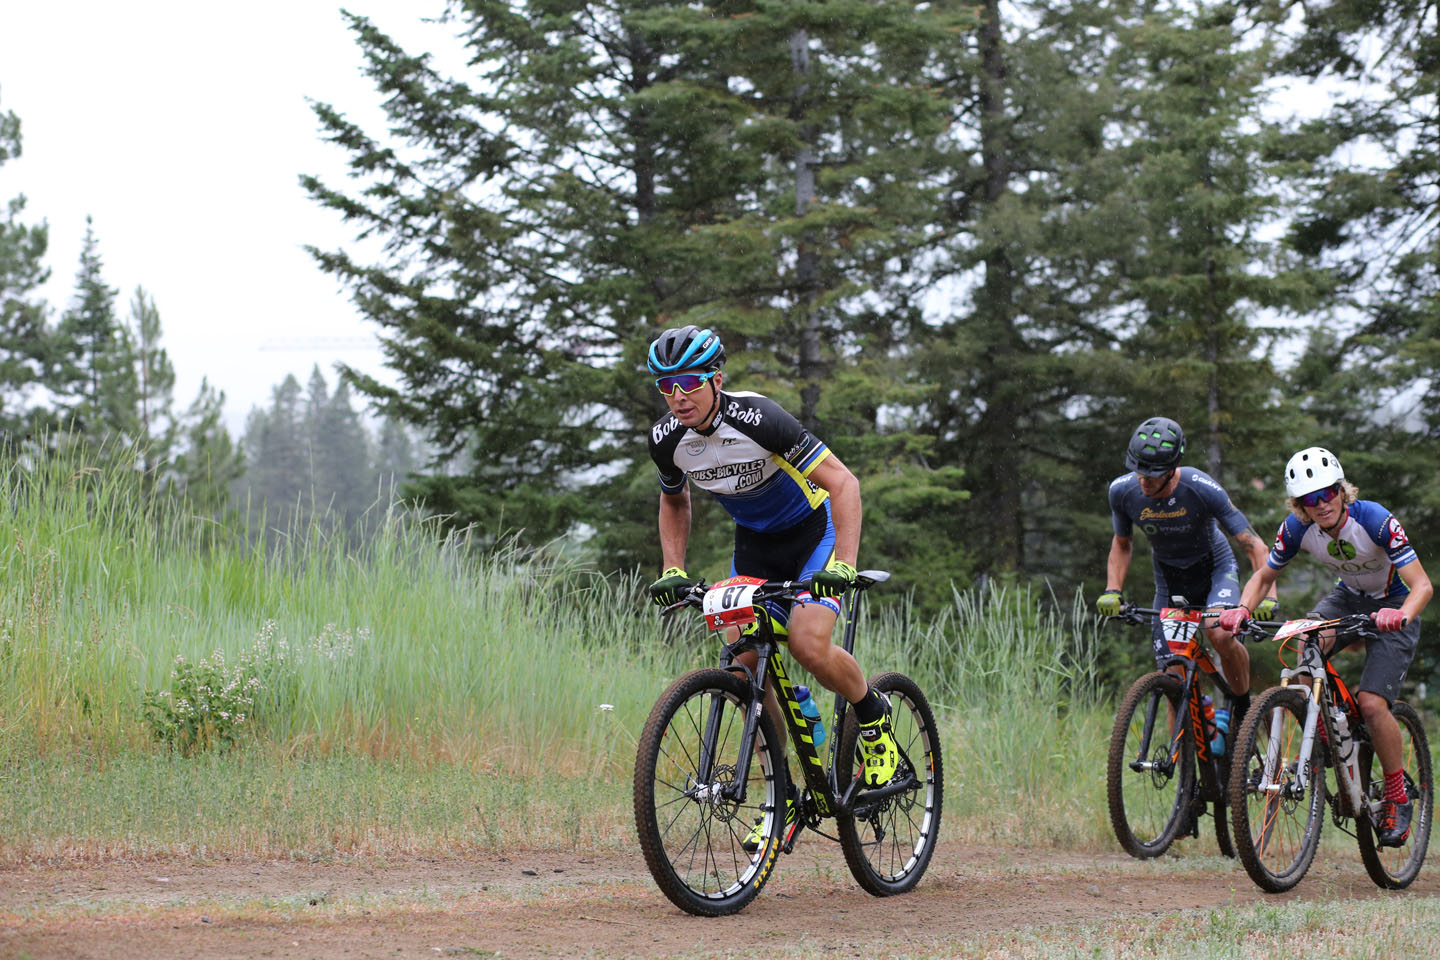 """Jamey Yanik leads Ian Mullens and Eric Chizum up the first """"Bunny Hill"""" climb, and takes first place after leading the whole race"""